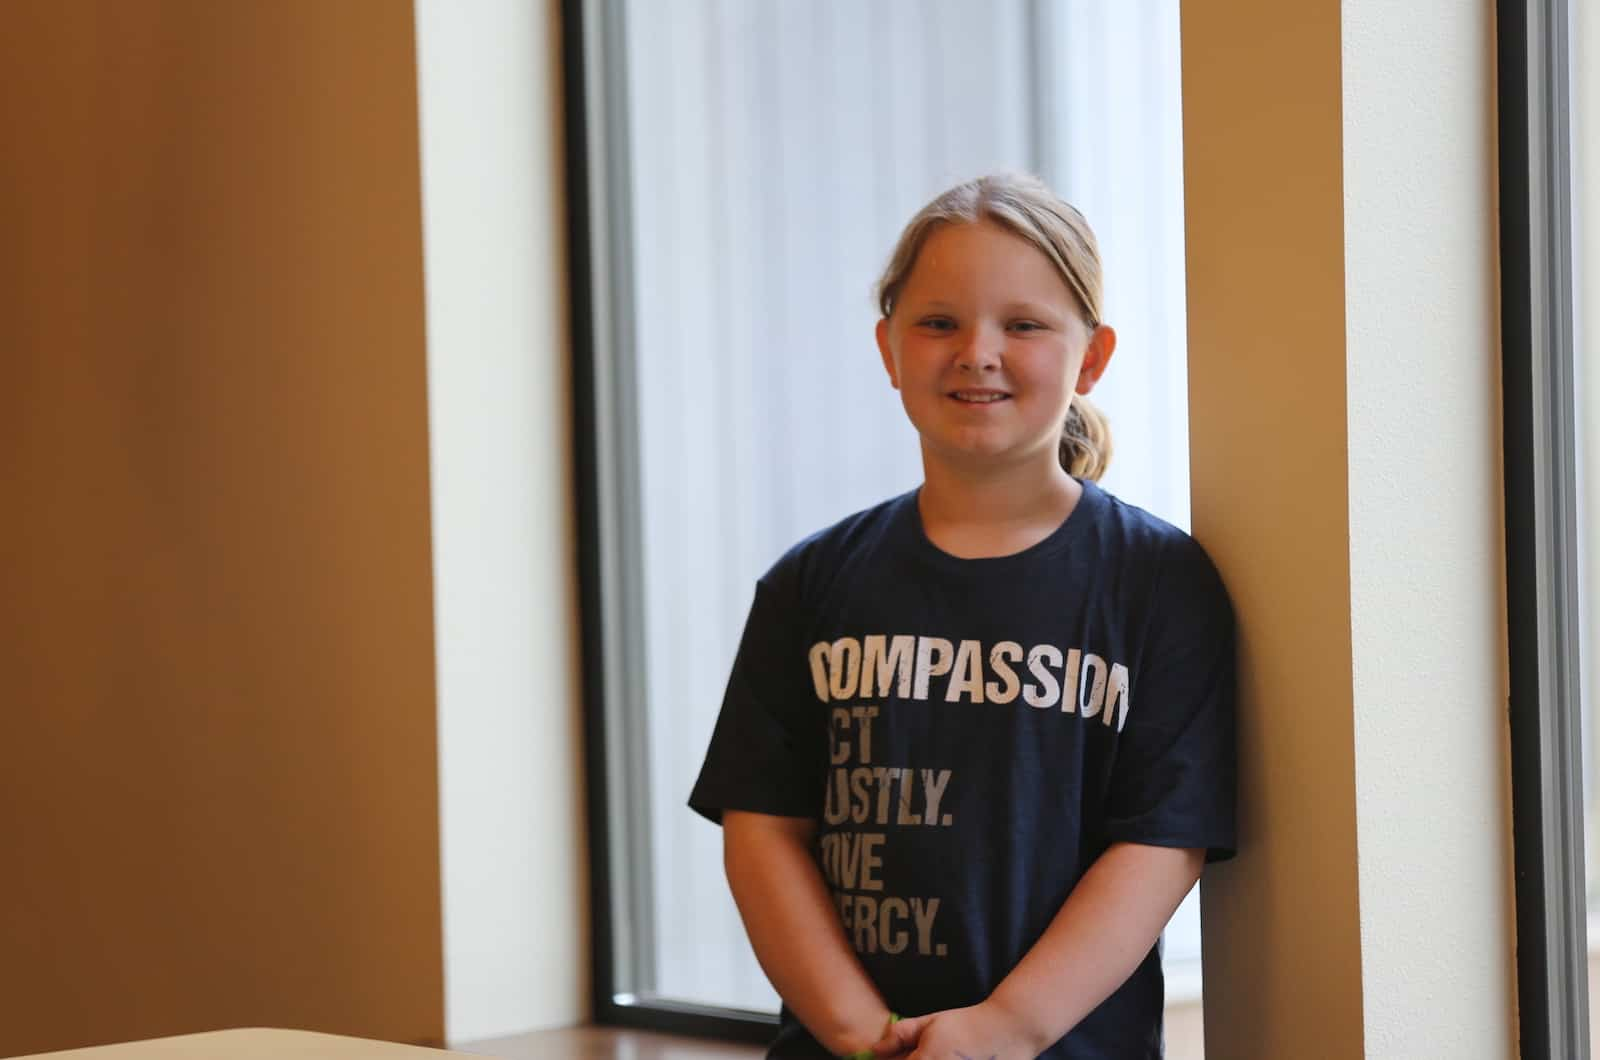 A girl in a T-shirt that says Compassion leans against a wall.